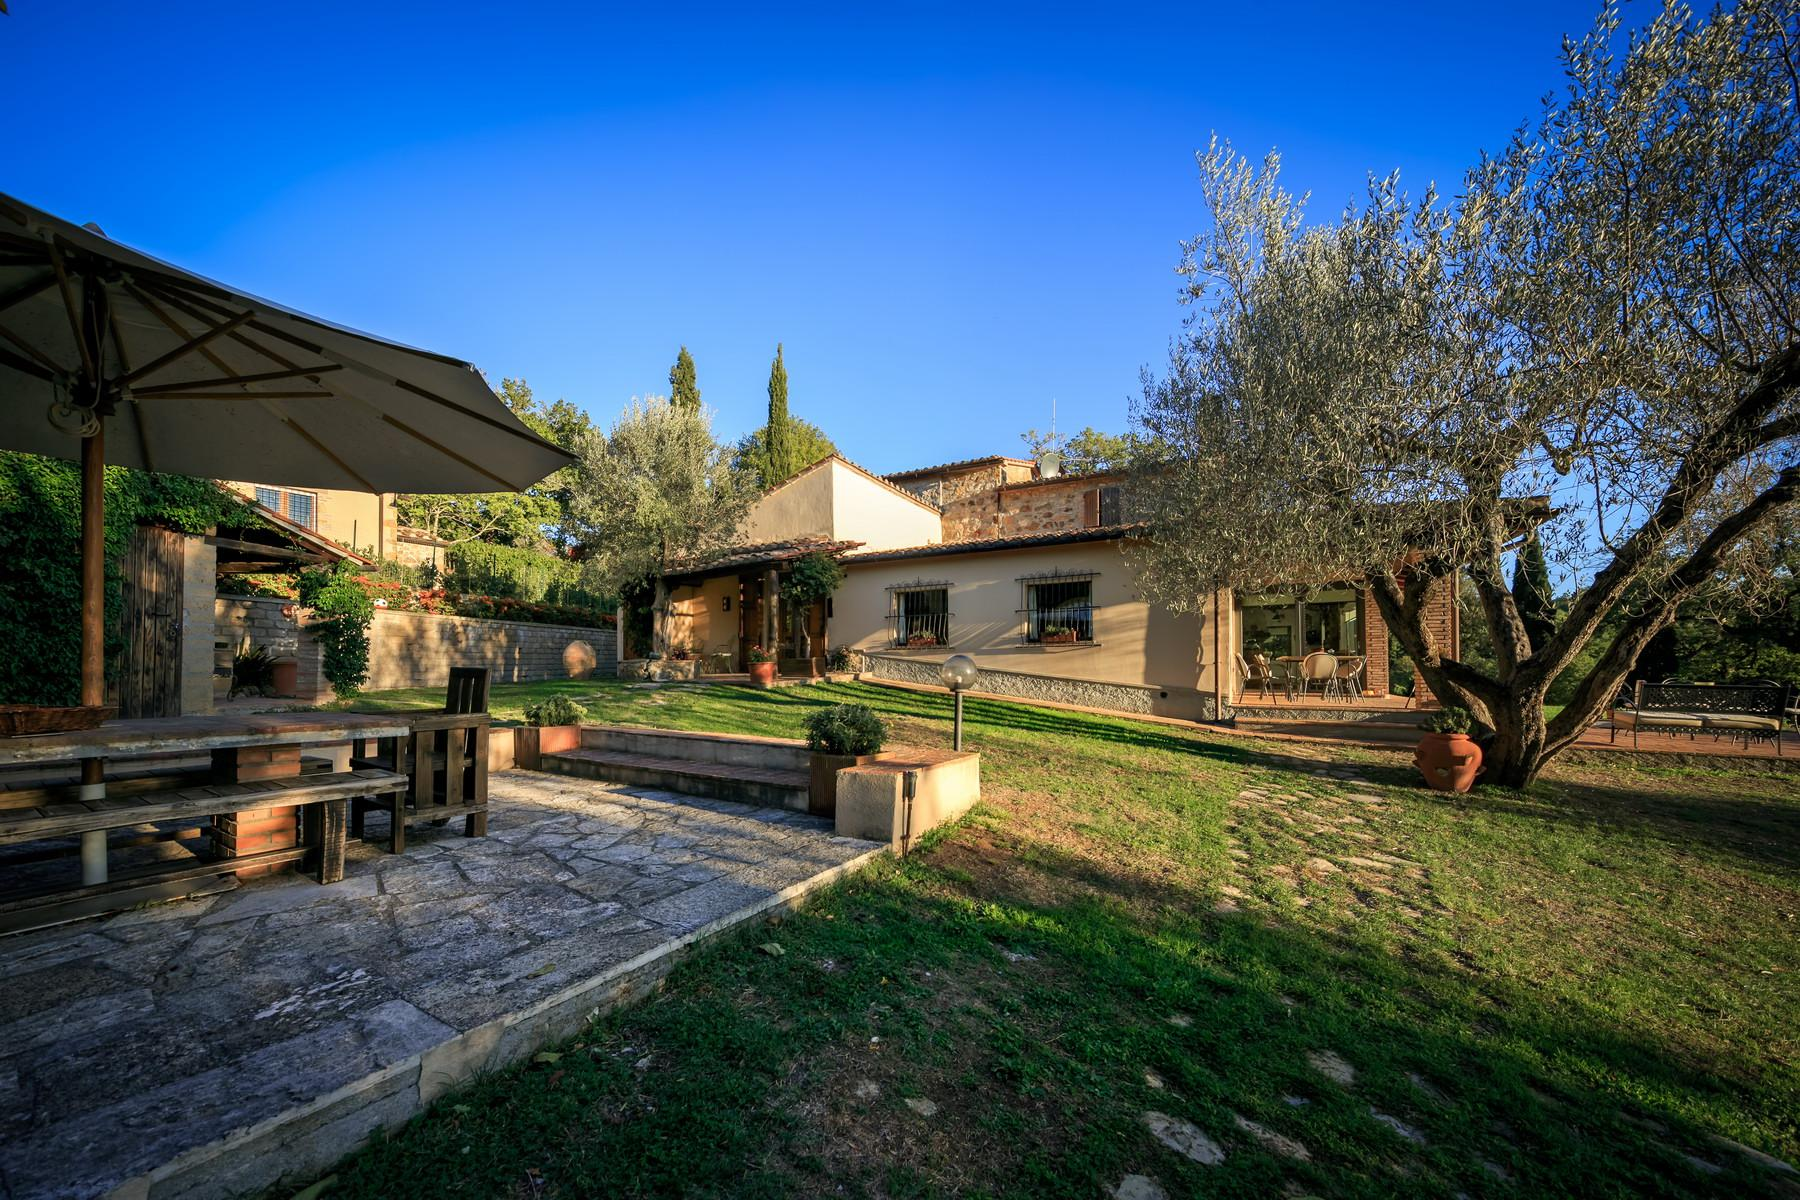 Farmhouse with outbuildingand pool with beautiful view over Saturnia and the surroundings - 3